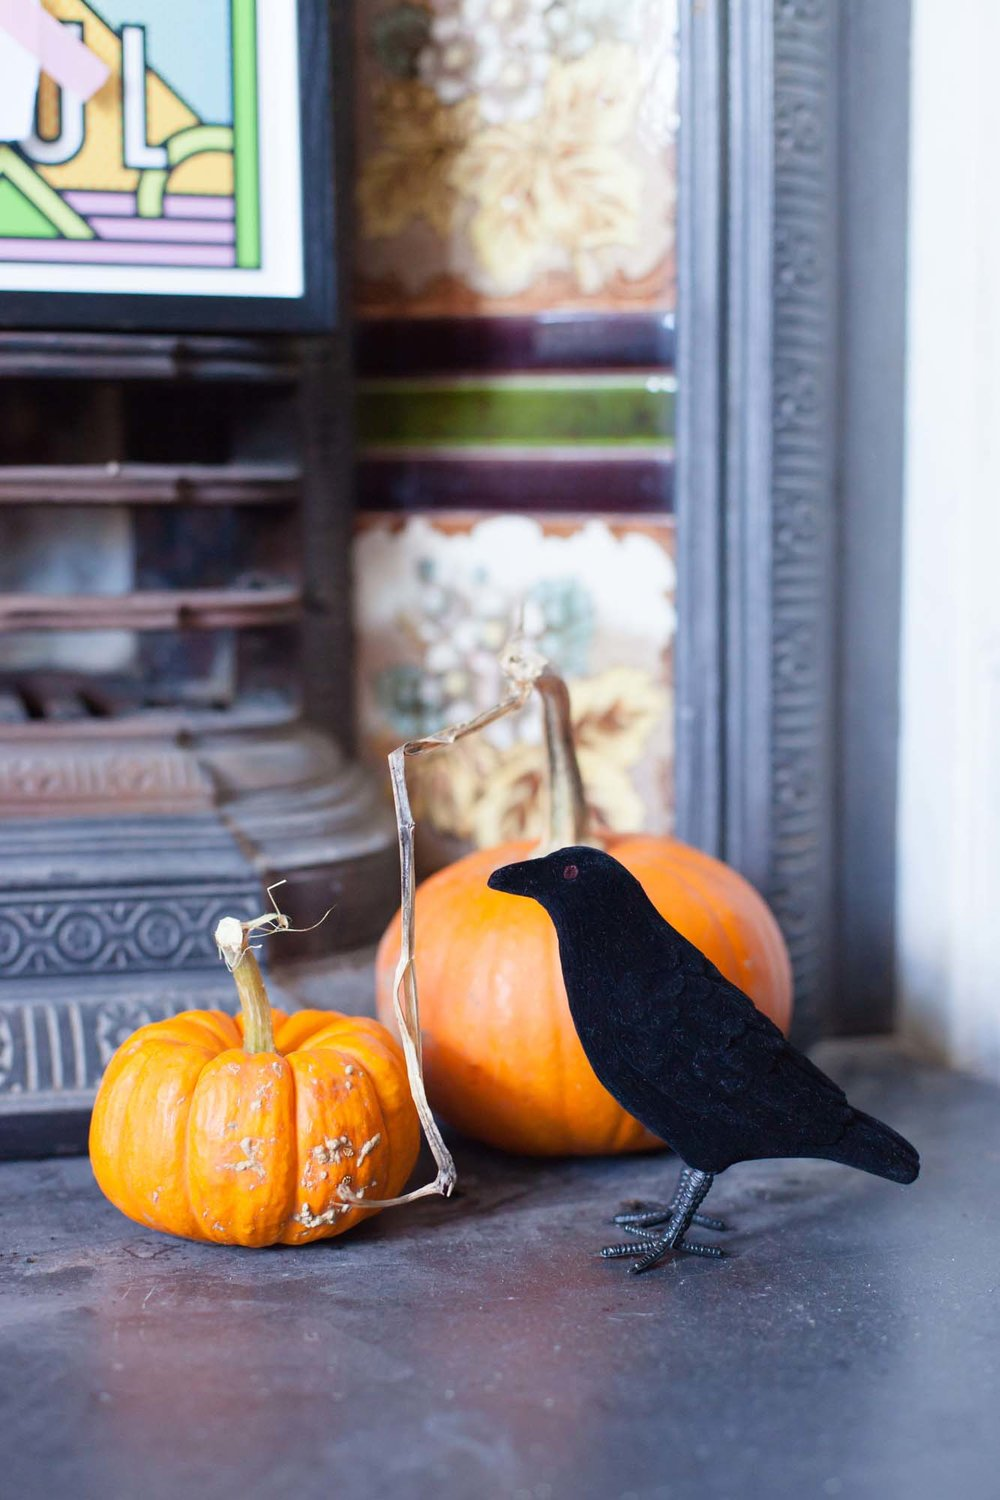 Sainsbury's Halloween crow and pumpkins